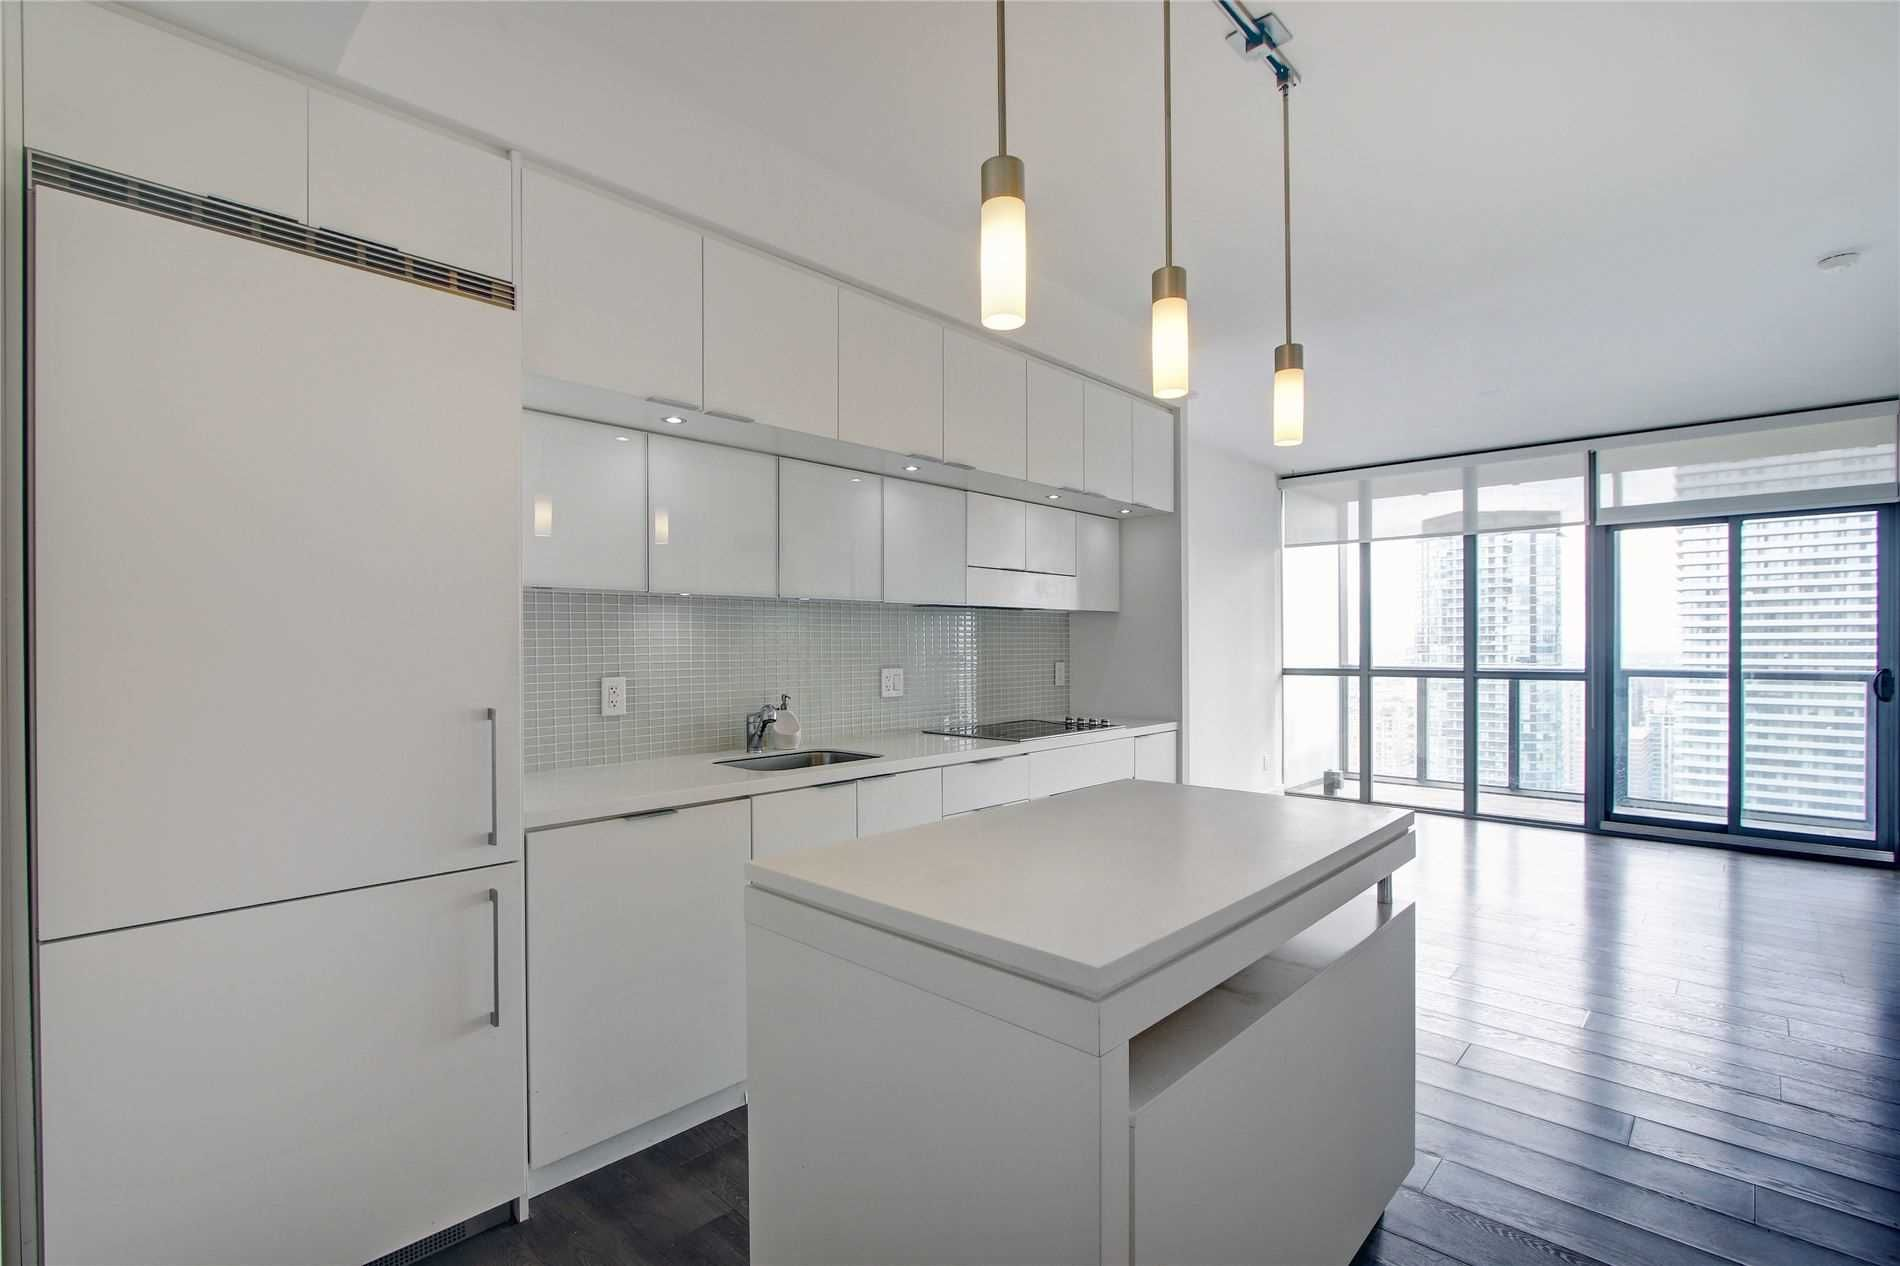 110 Charles St E, unit 3803 for rent in Toronto - image #2